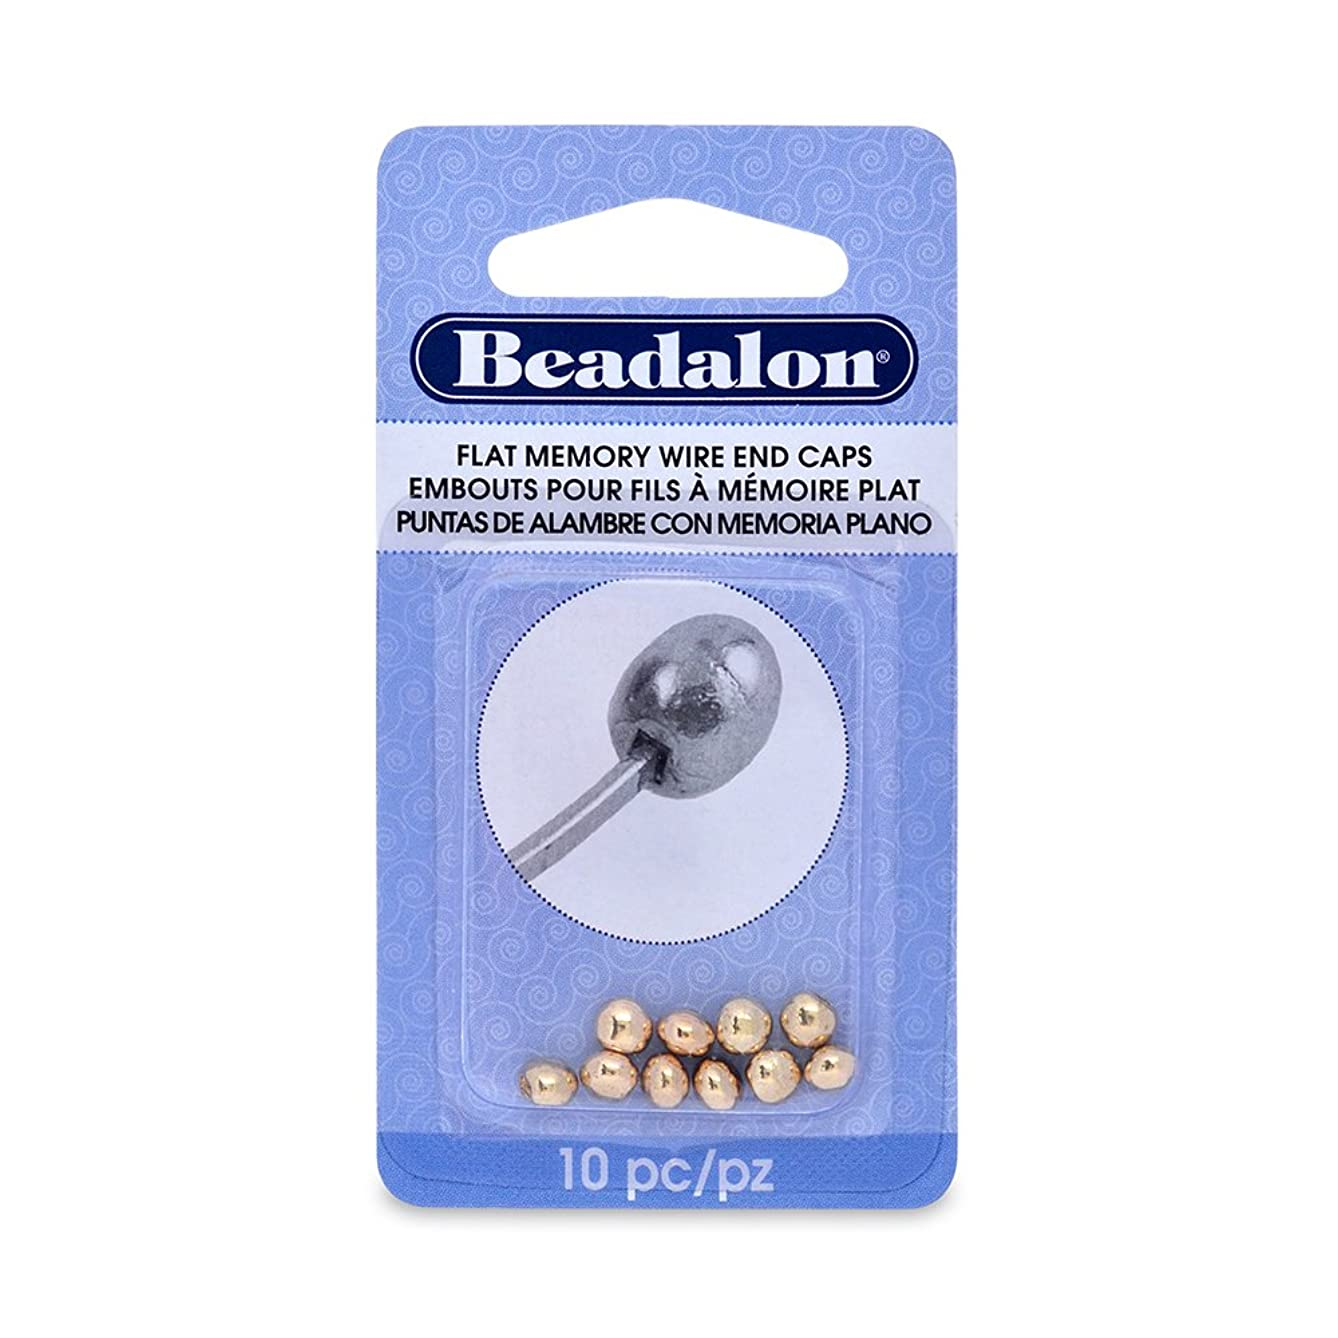 Beadalon 10-Piece Flat Memory Wire End Cap Set, 0.19 by 0.15-Inch, Gold